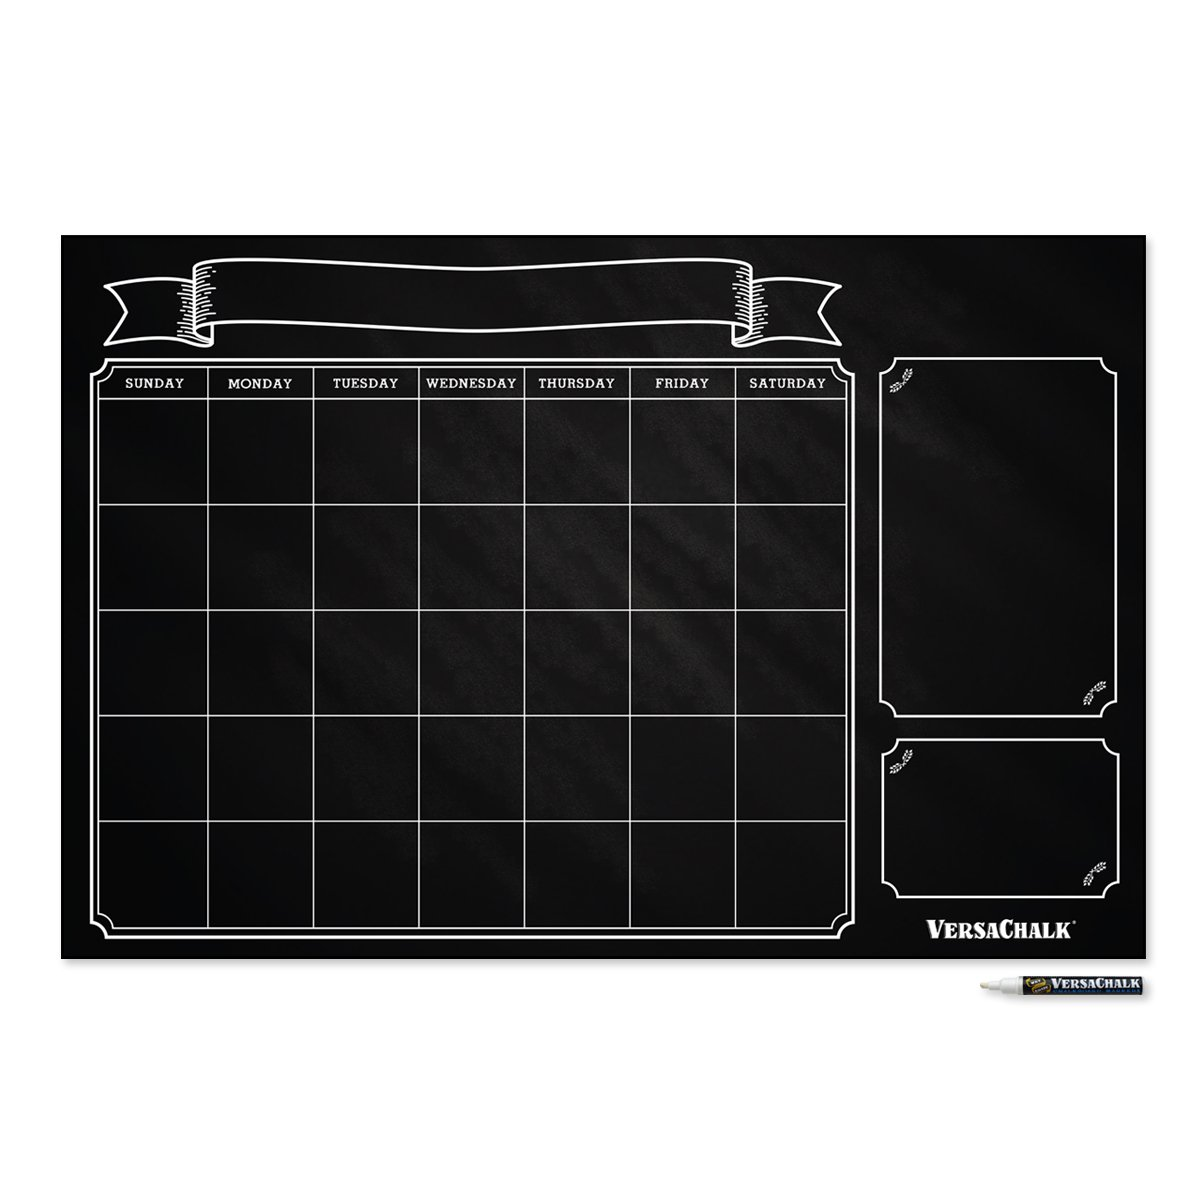 Amazon.com : Large Erasable Chalkboard Calendar Wall Decal Sticker   24